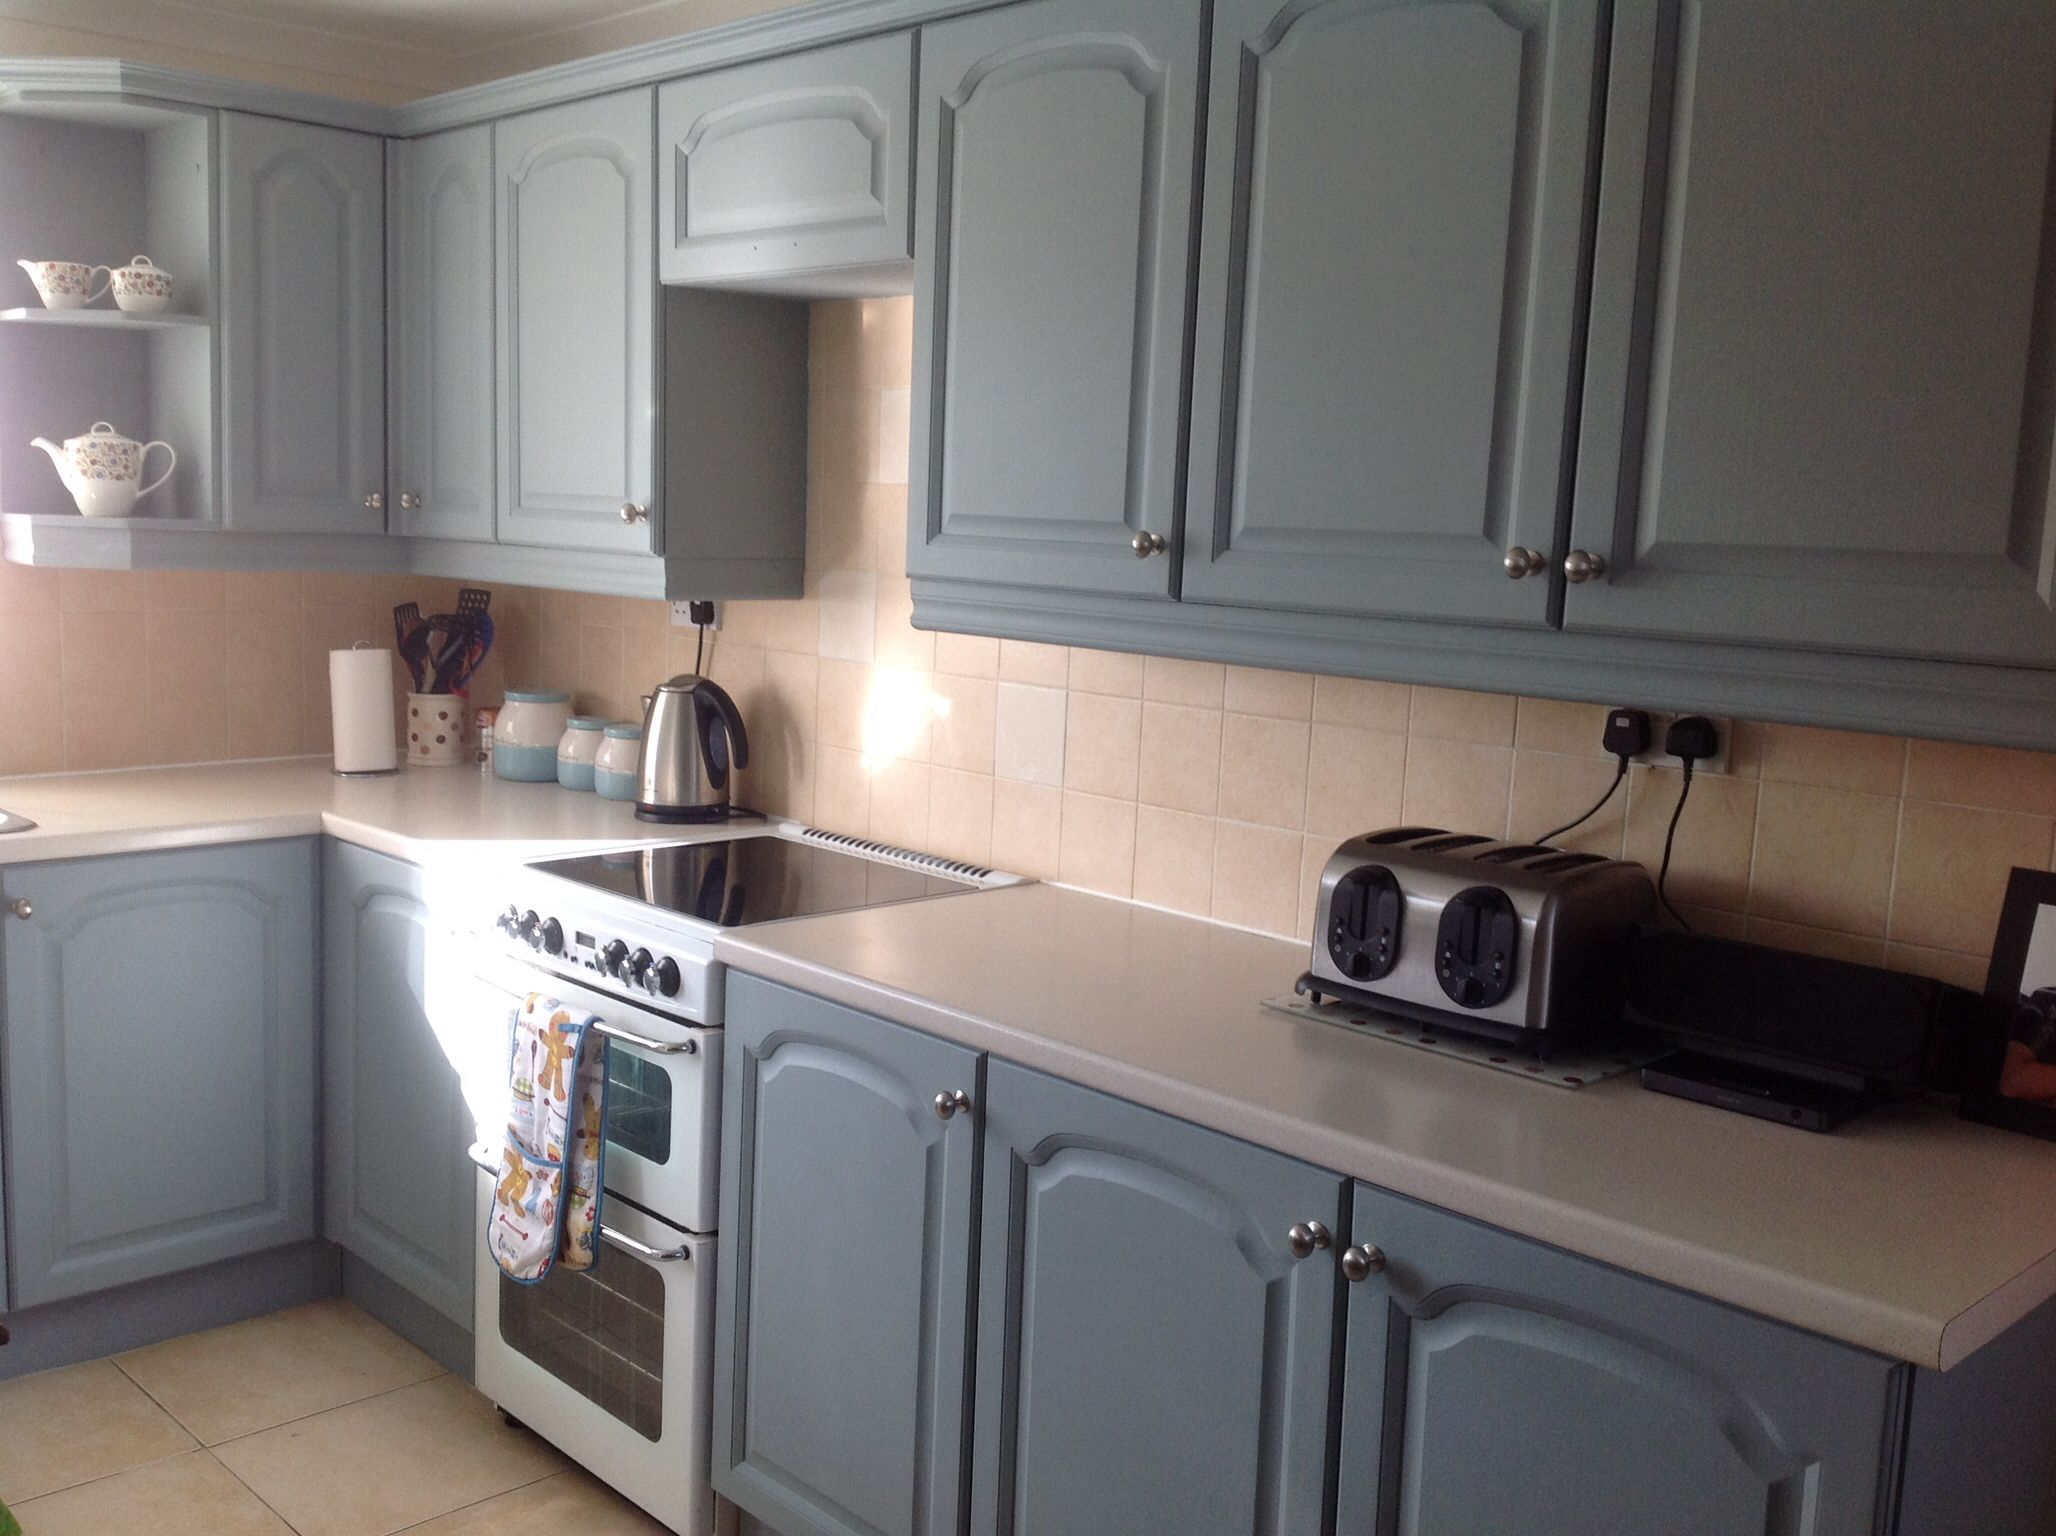 Kitchen Cupboard Colours Paintedkitchen Cupboards With Autentico Paint In